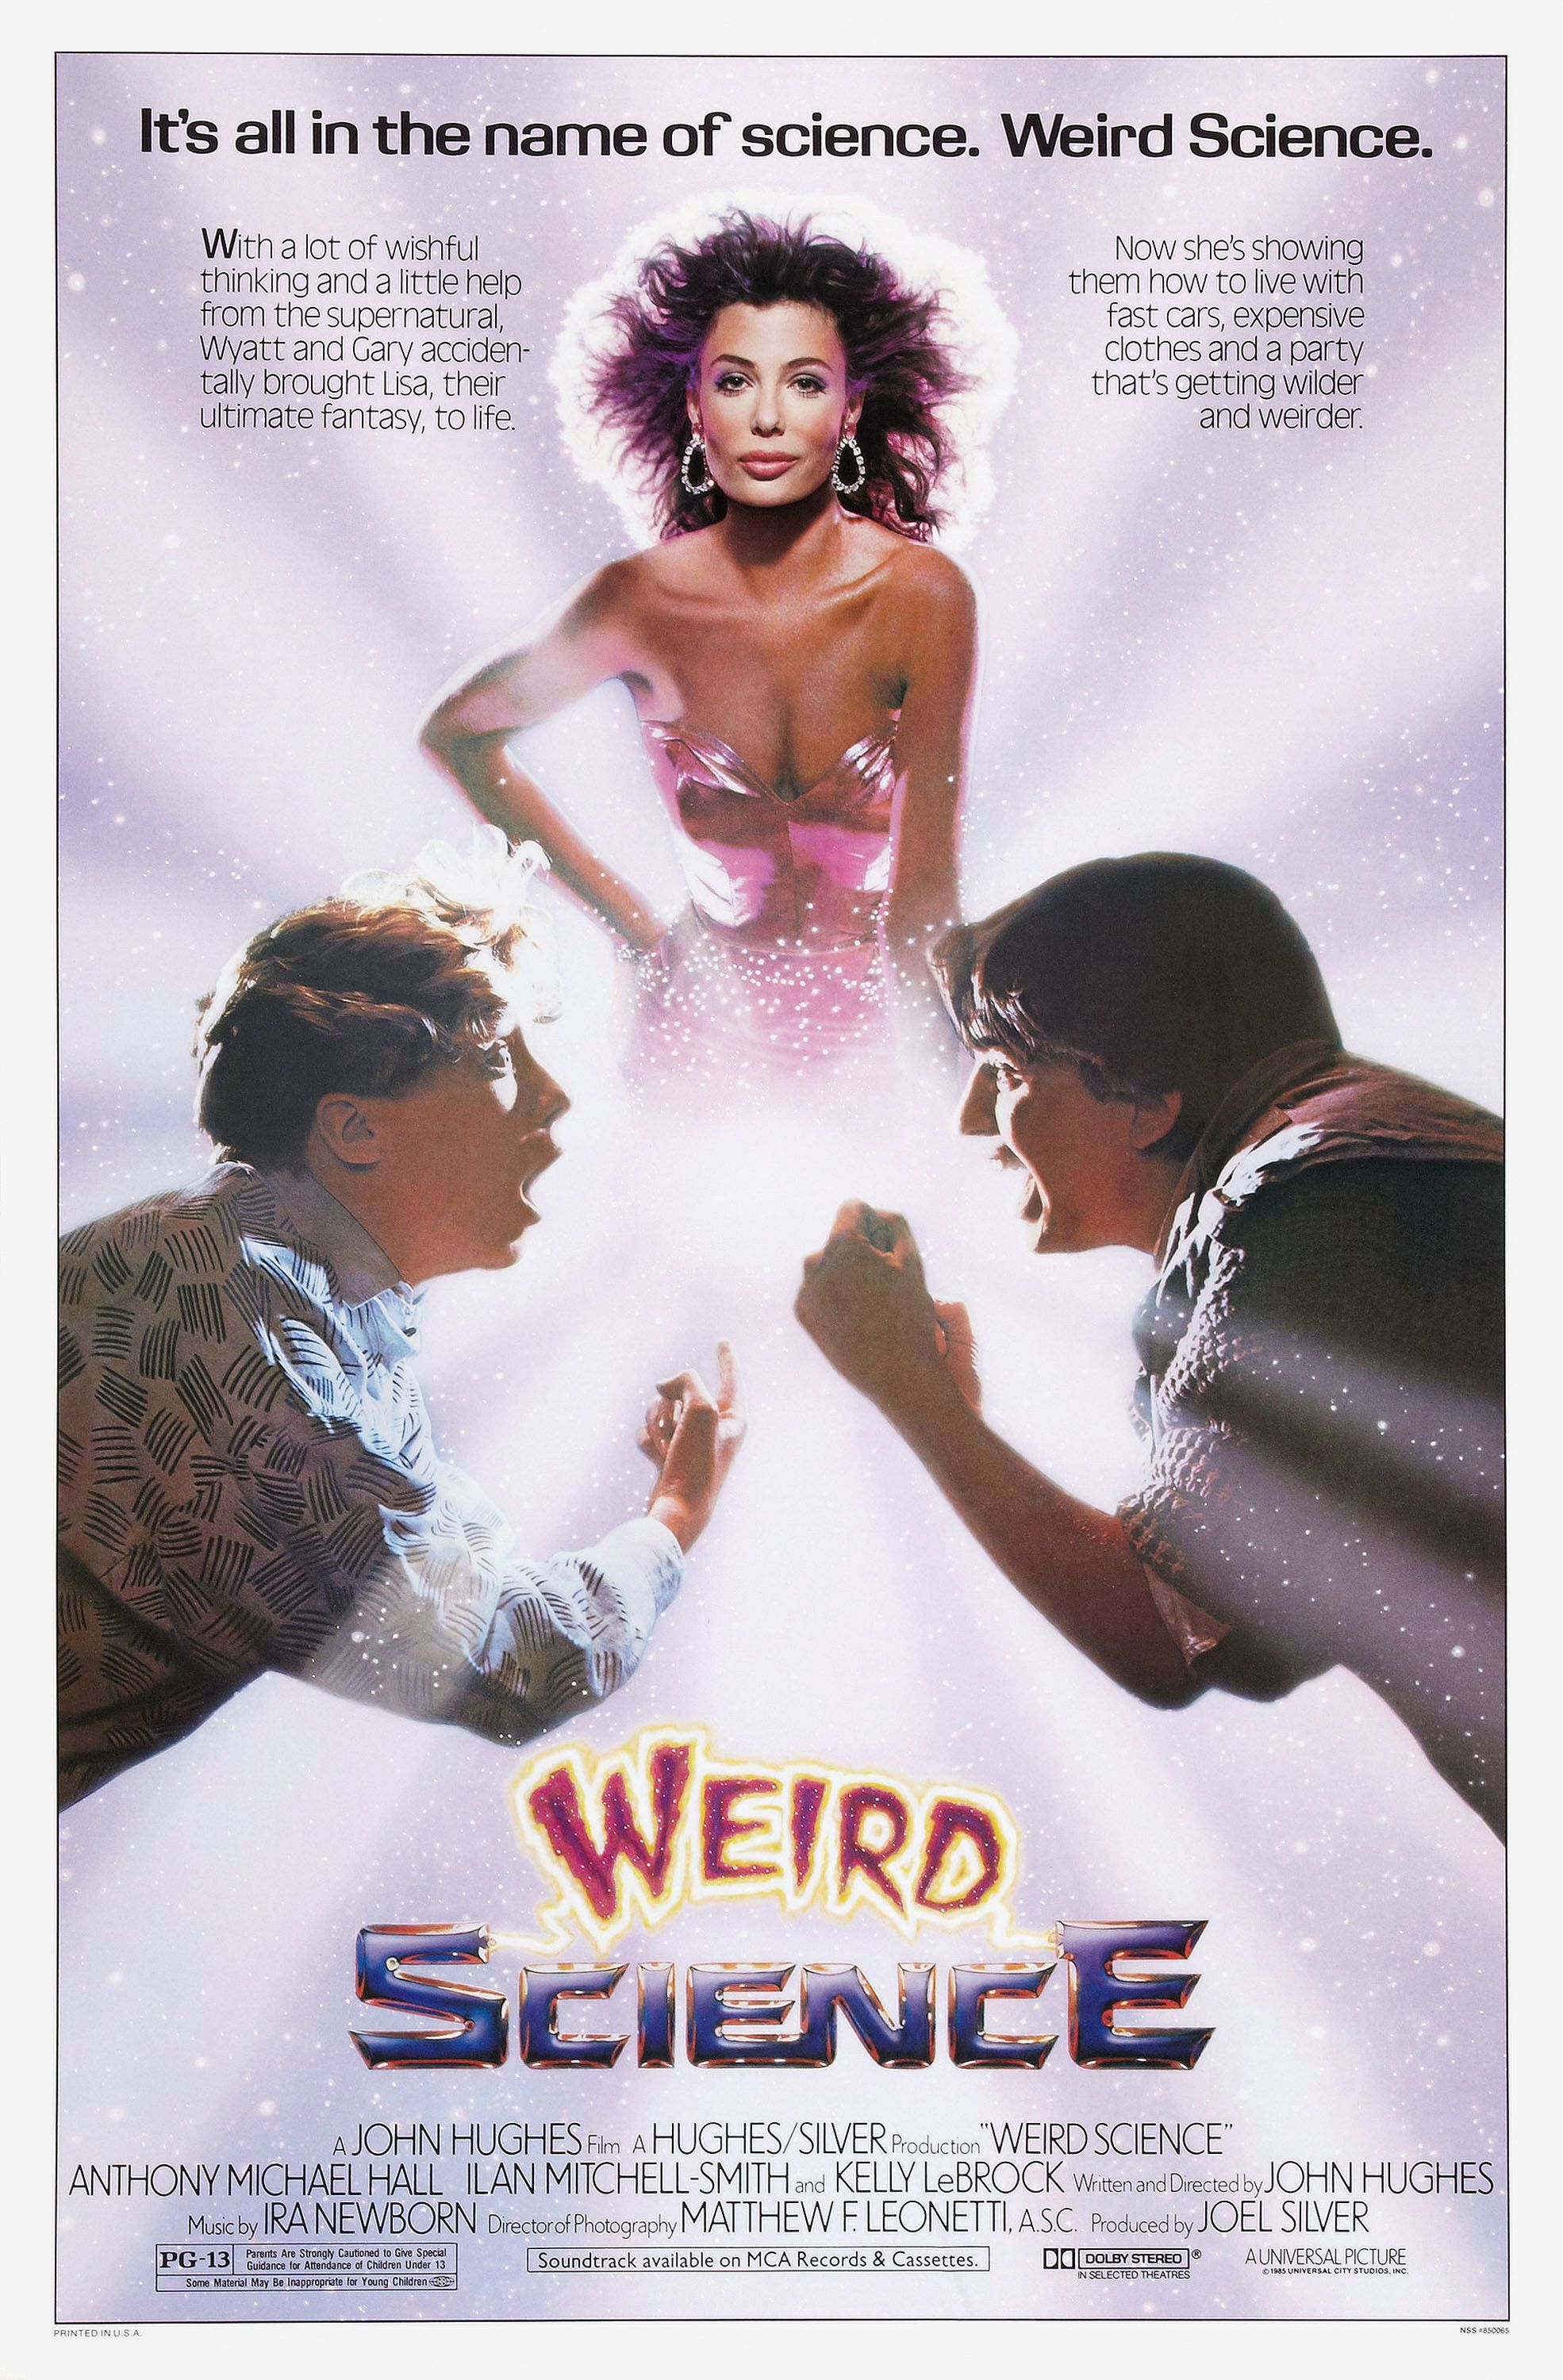 Weird Science alternate poster